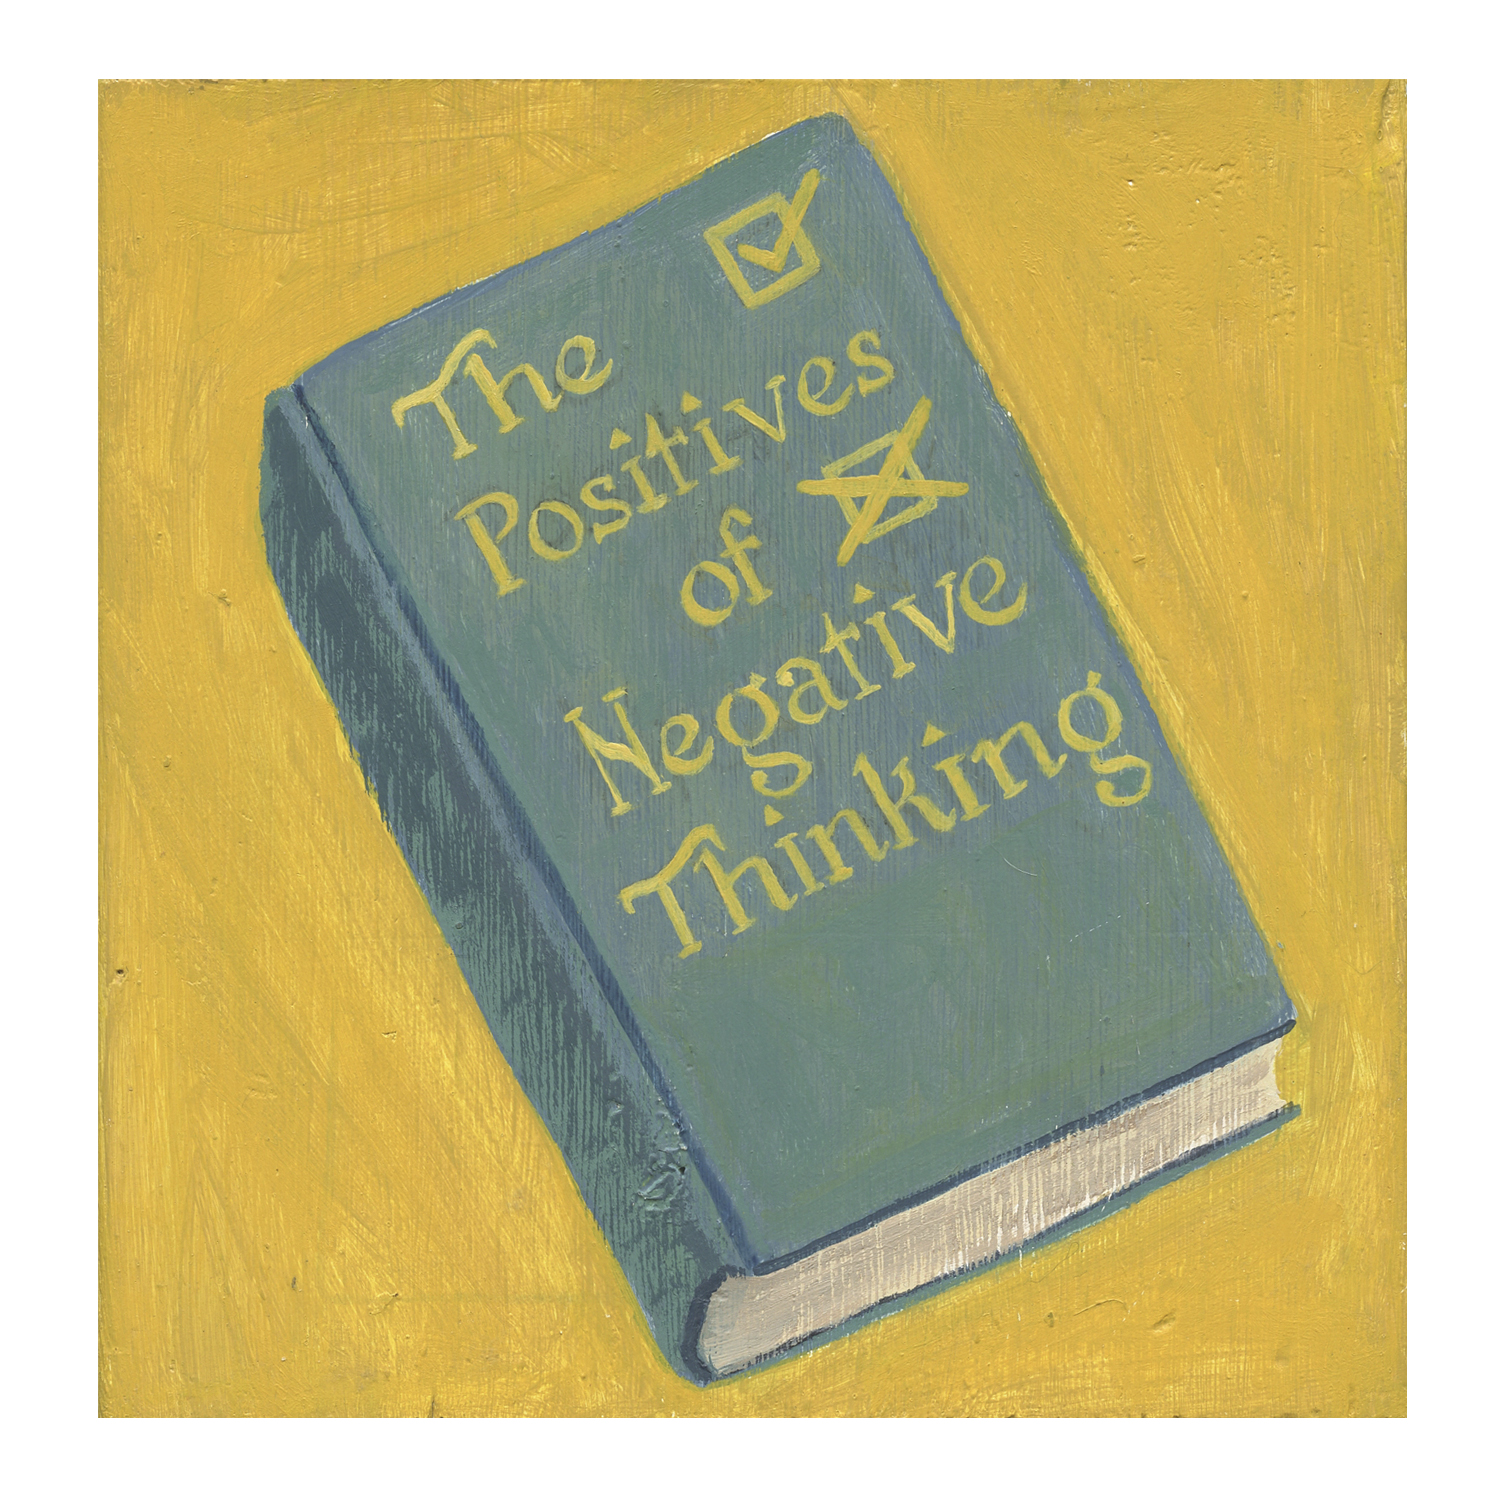 The Positives of Negative Thinking